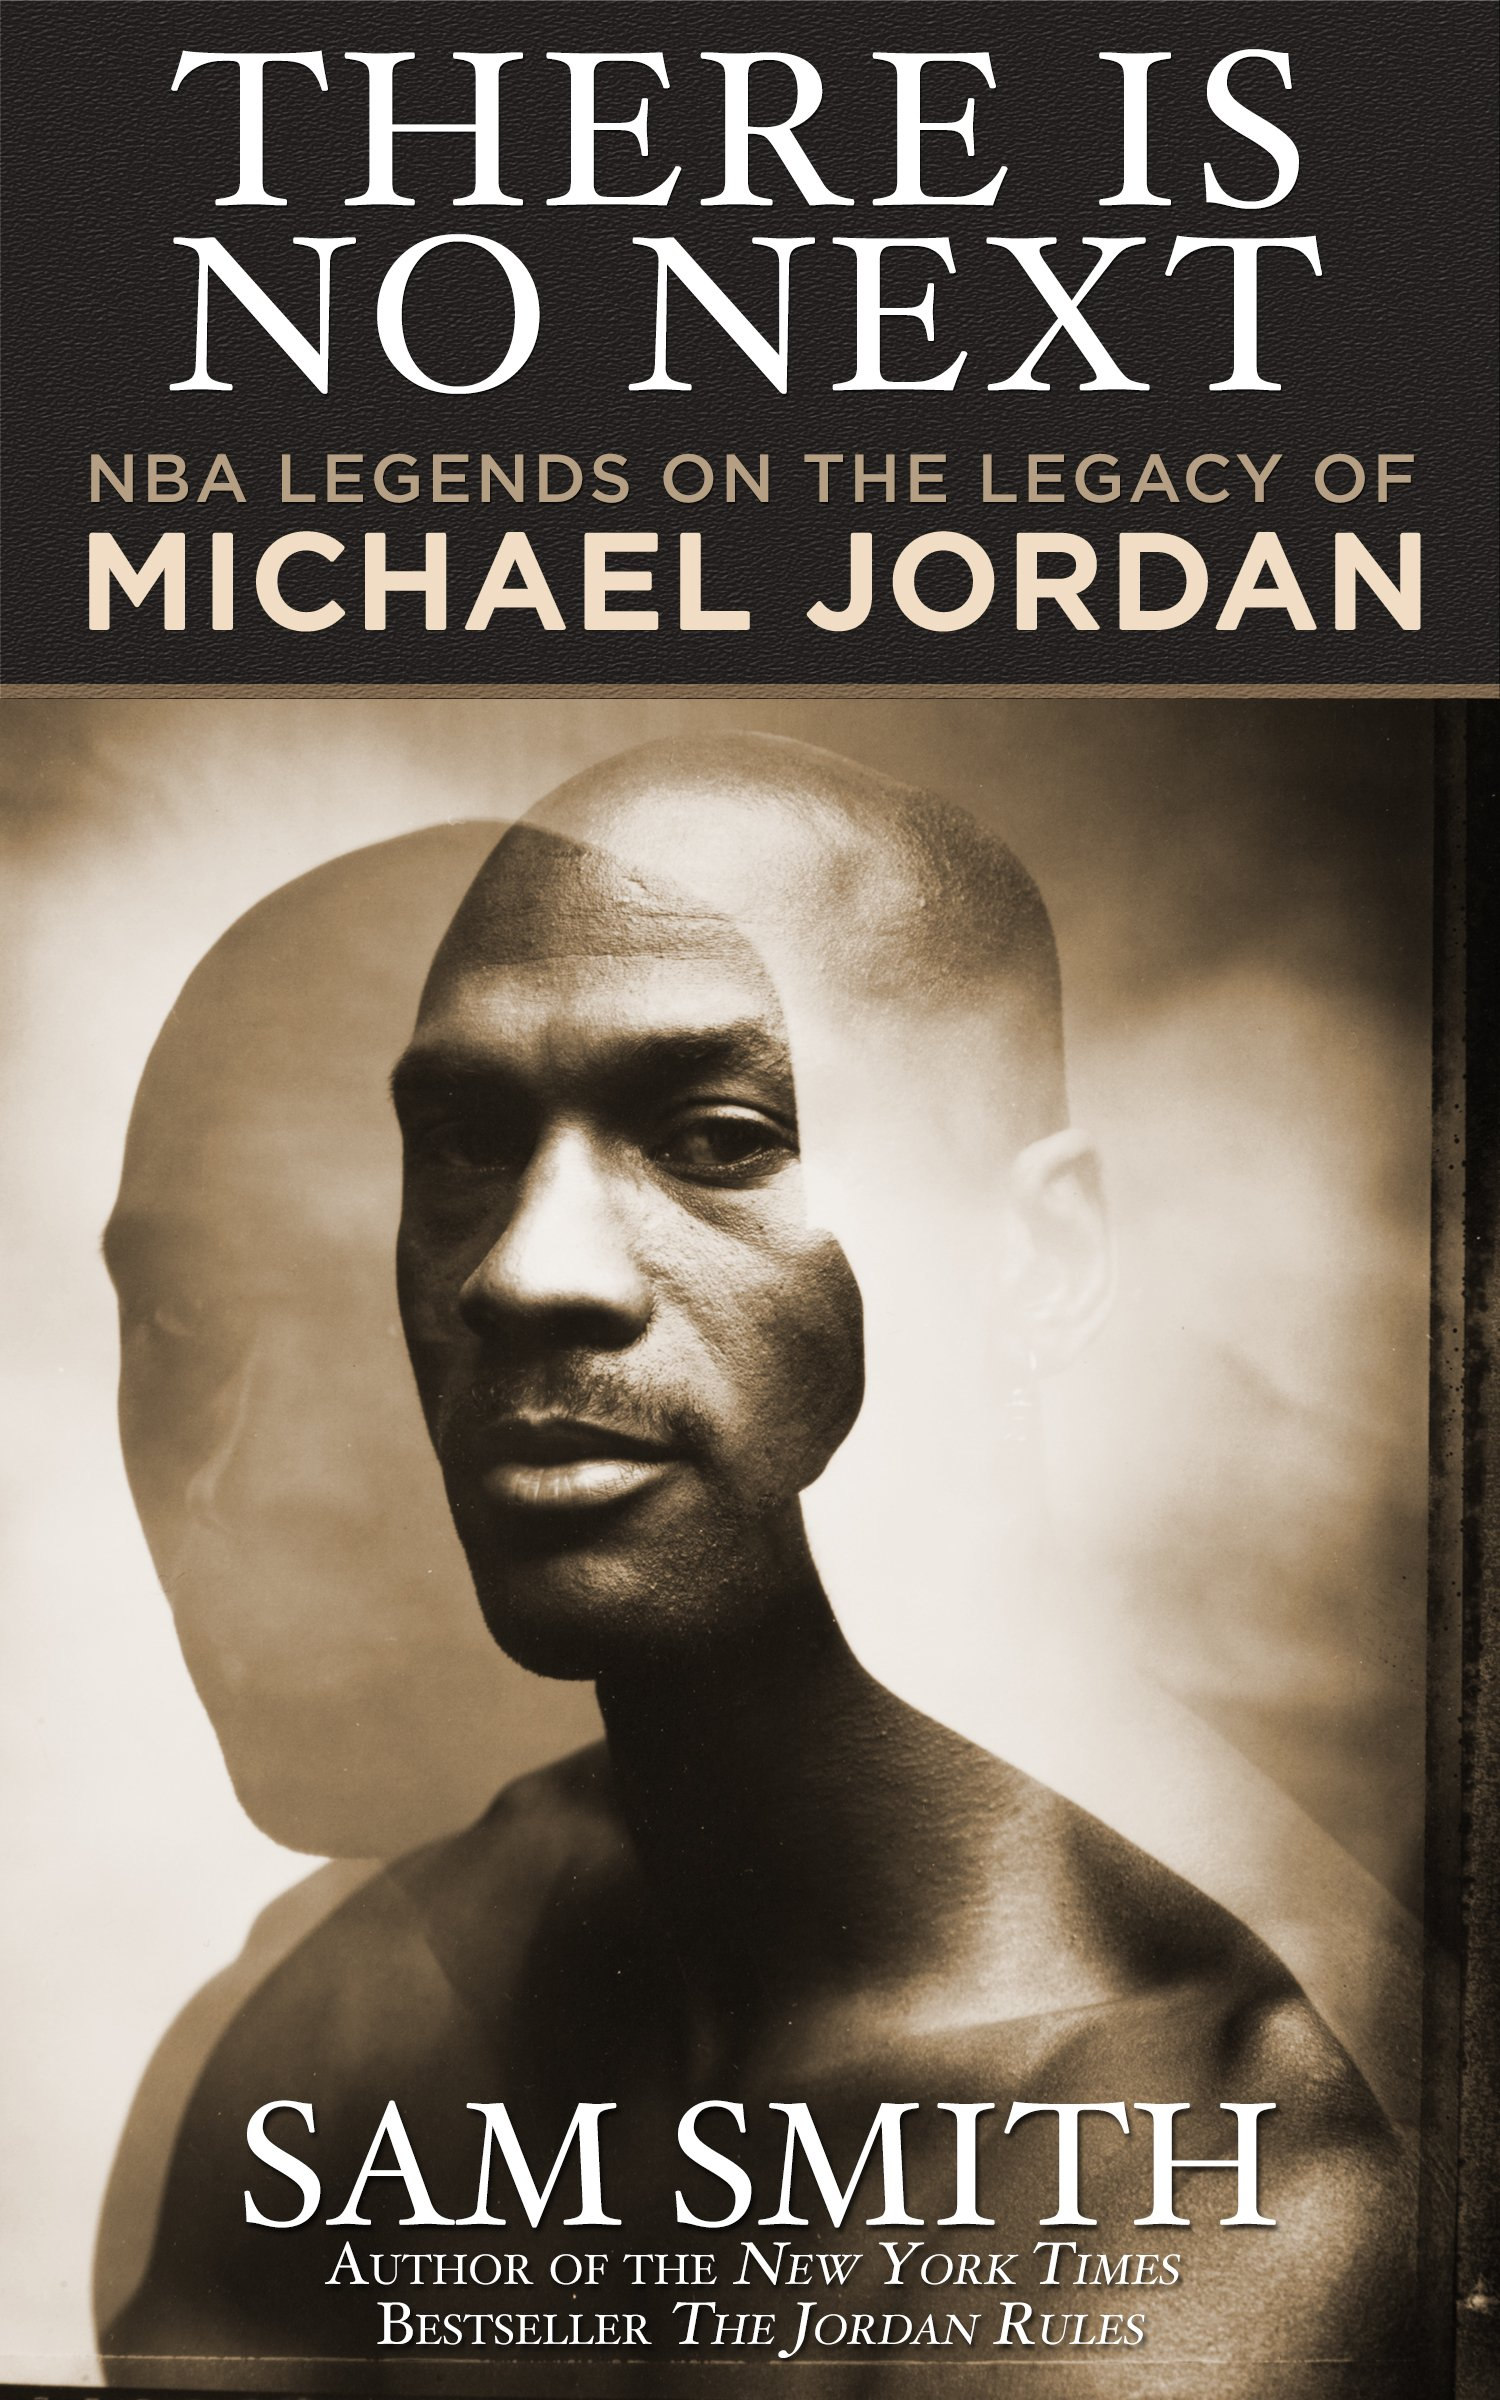 Image OfThere Is No Next: NBA Legends On The Legacy Of Michael Jordan (English Edition)